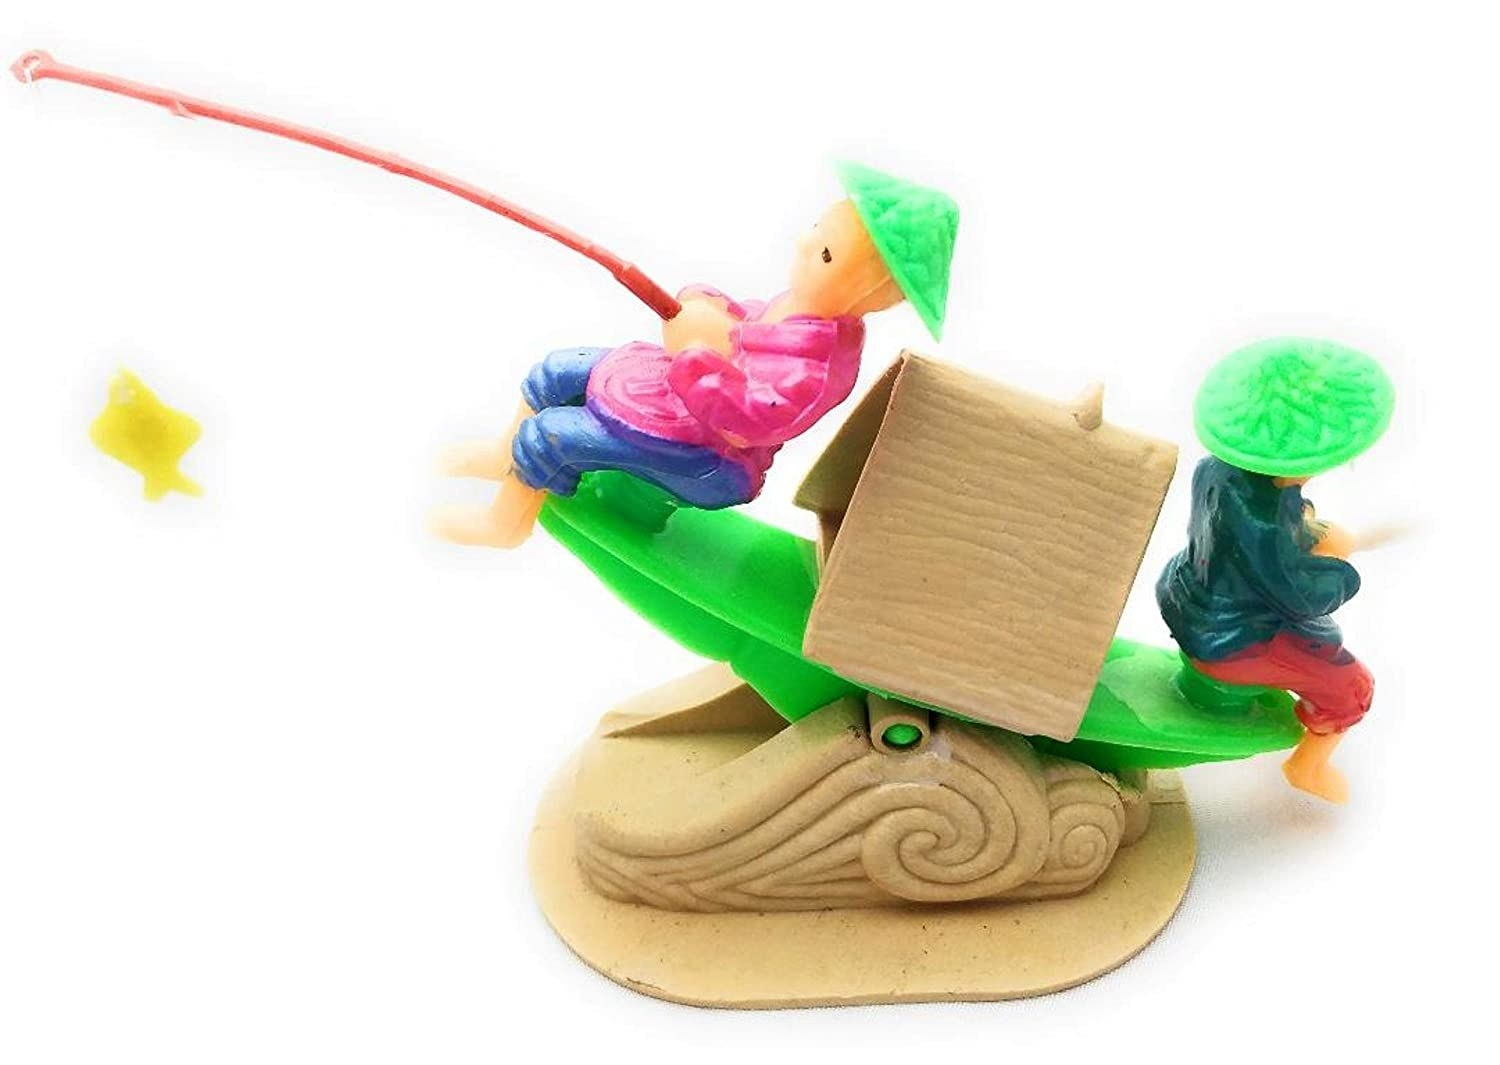 Sea saw ornament in the design of a boat, with two people sitting on either side and facing outwards - one of them holding a fishing rod.